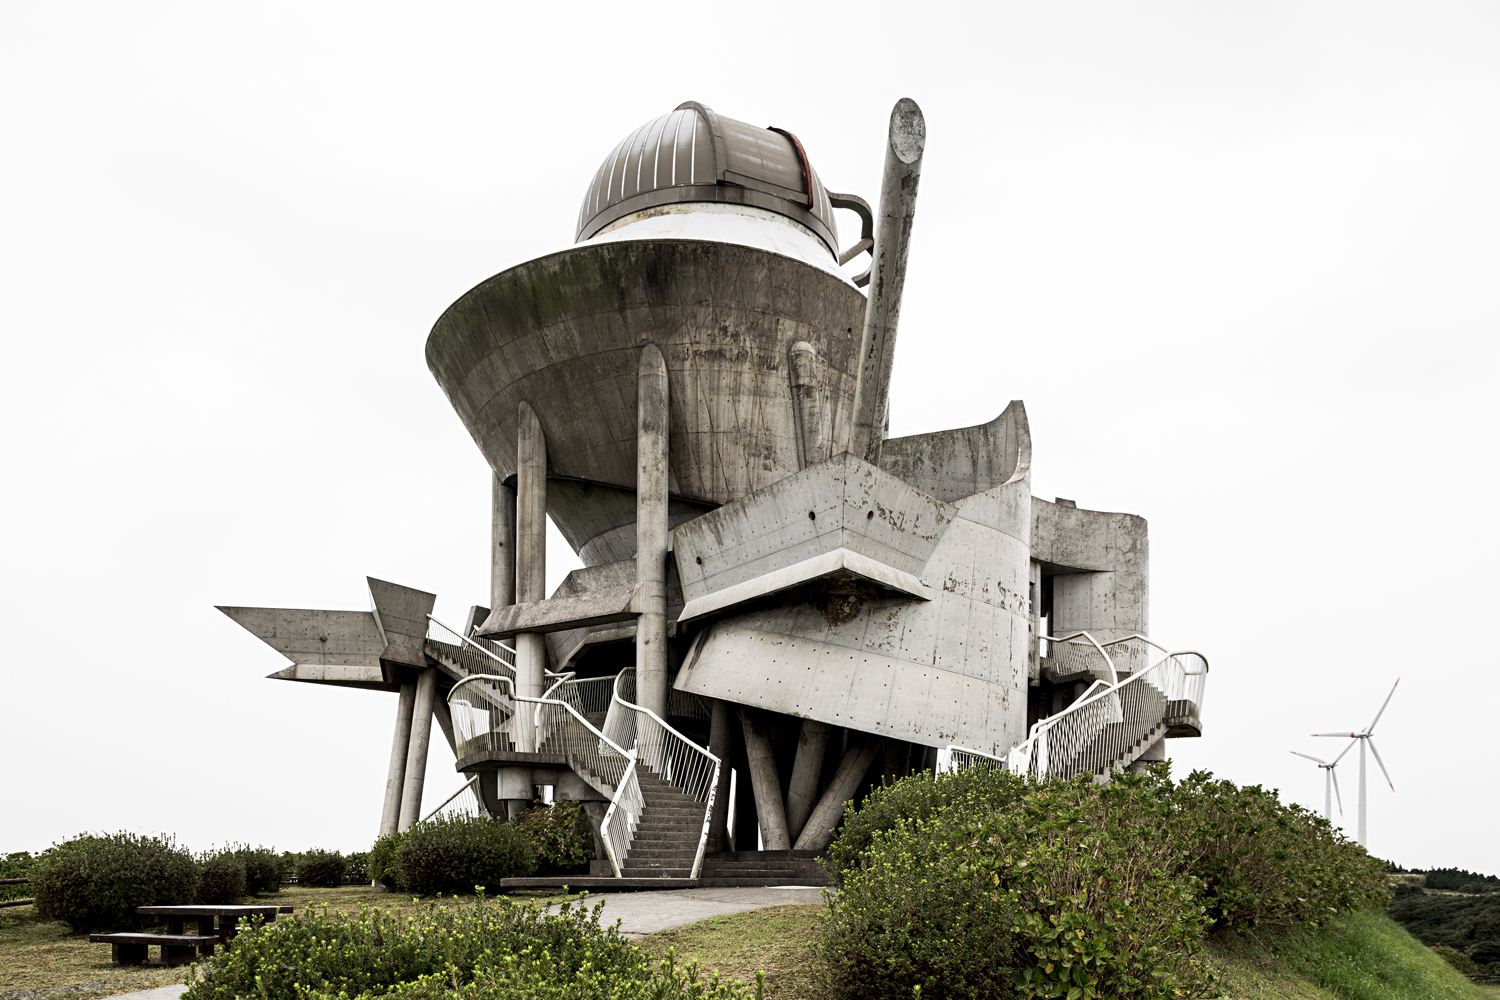 Kihoku Tenkyukan, an astronomical museum and observatory designed by Takasaki Architects, 1995. Kanoya, Japan. Photo: Stefano Perego.